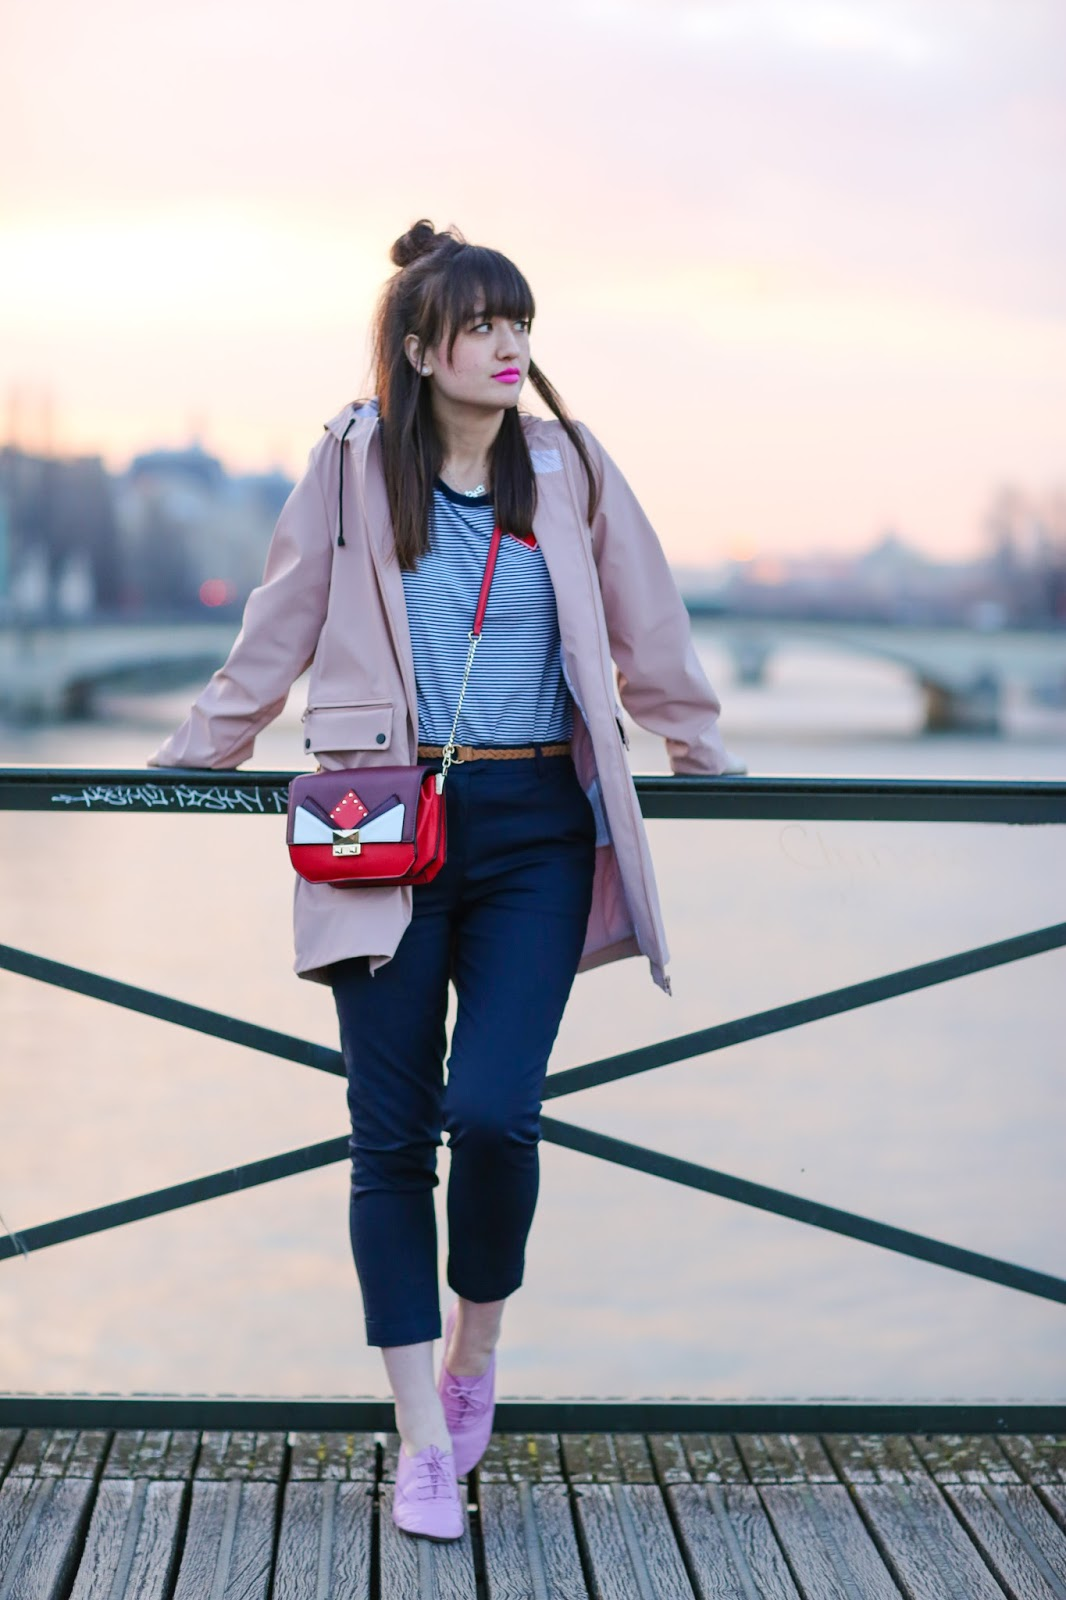 Parisian fashion blogger, fashion photography, meetmeinparee, paris, casual style, street style